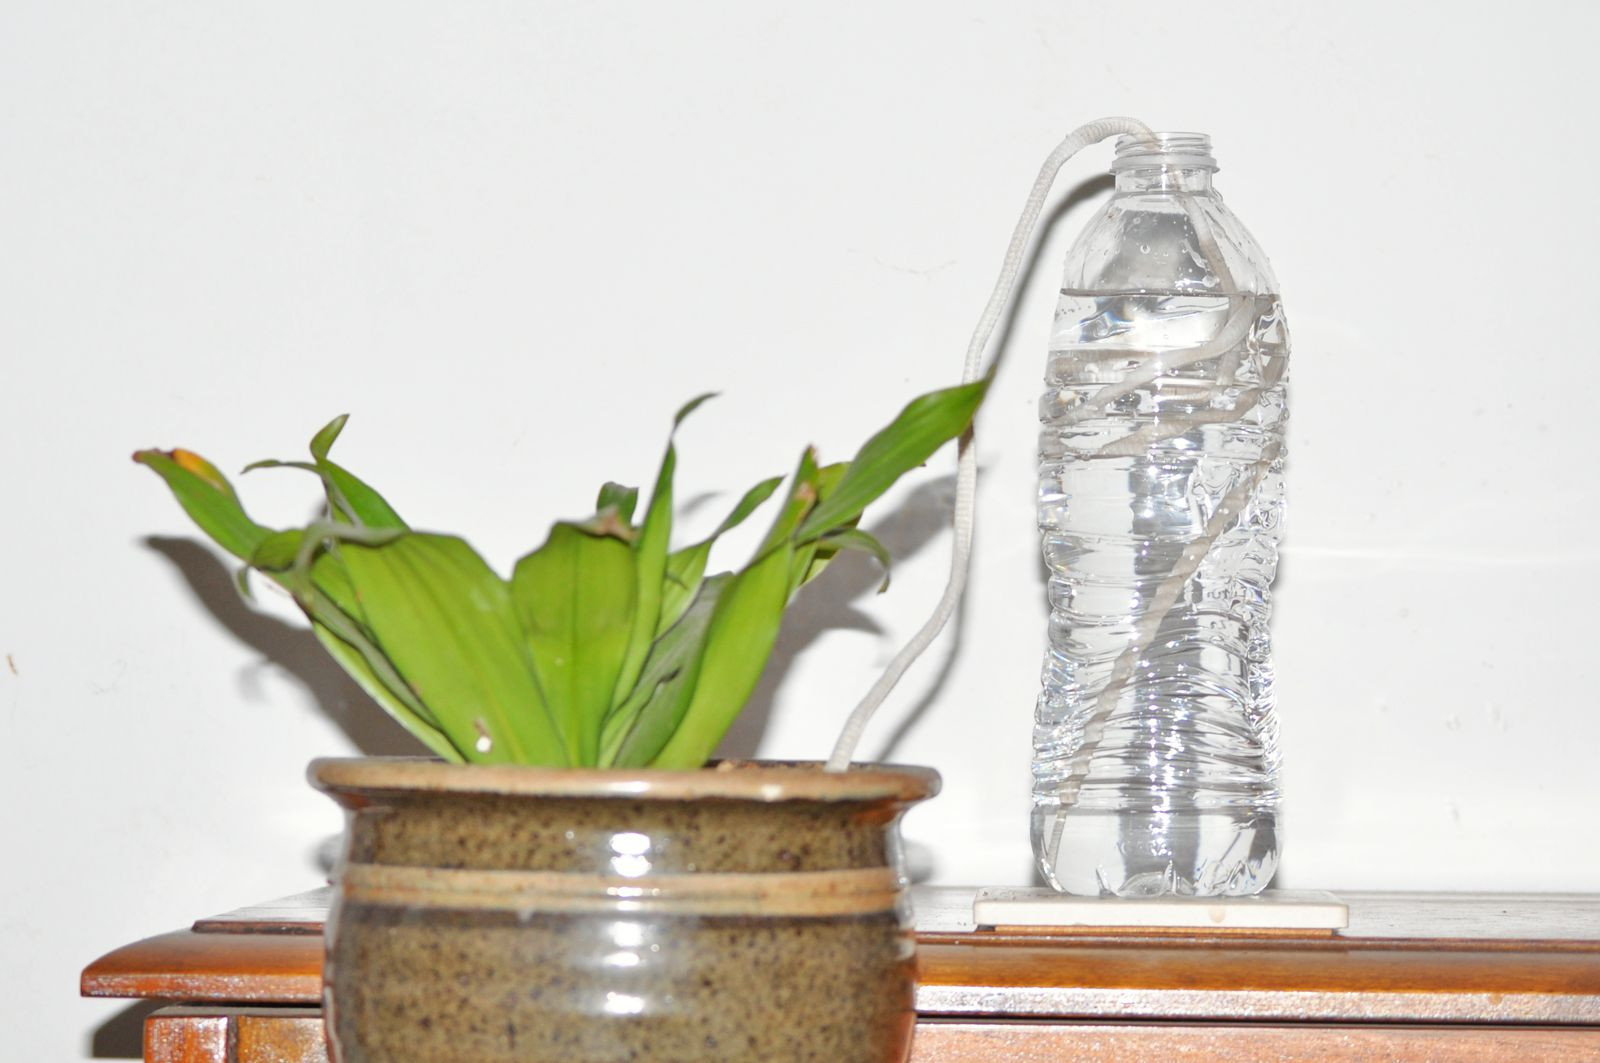 13 Fabulous Cotton Stems In Glass Vase 2021 free download cotton stems in glass vase of keeping your plants alive while youre away in self waterer 593ee3805f9b58d58a734526